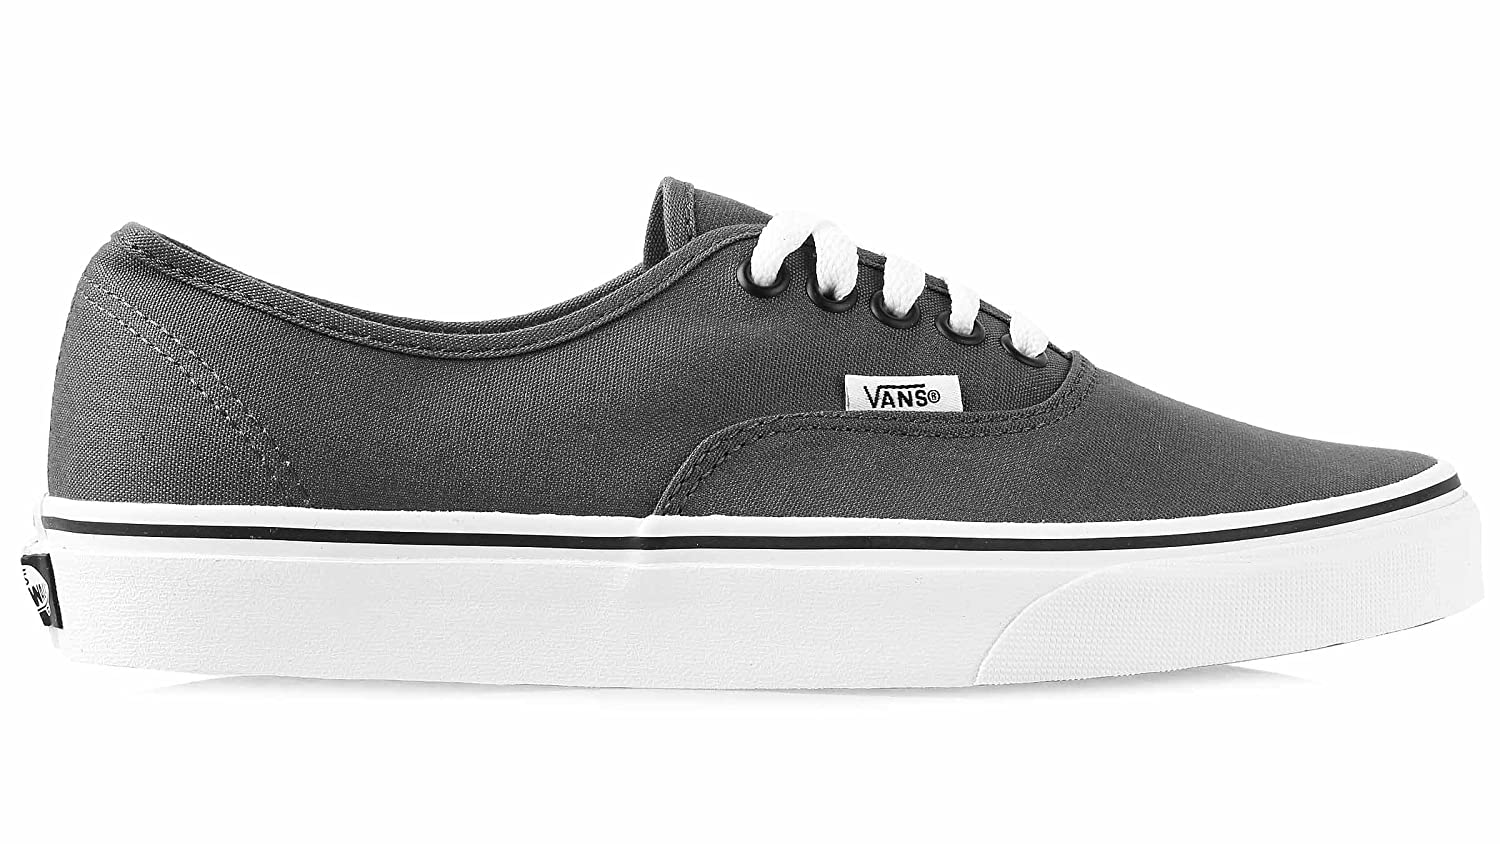 Vans Authentic Unisex Skate Trainers Shoes B01MCXWQOQ 7.5 M US Women / 6 M US Men|Pewter/Black